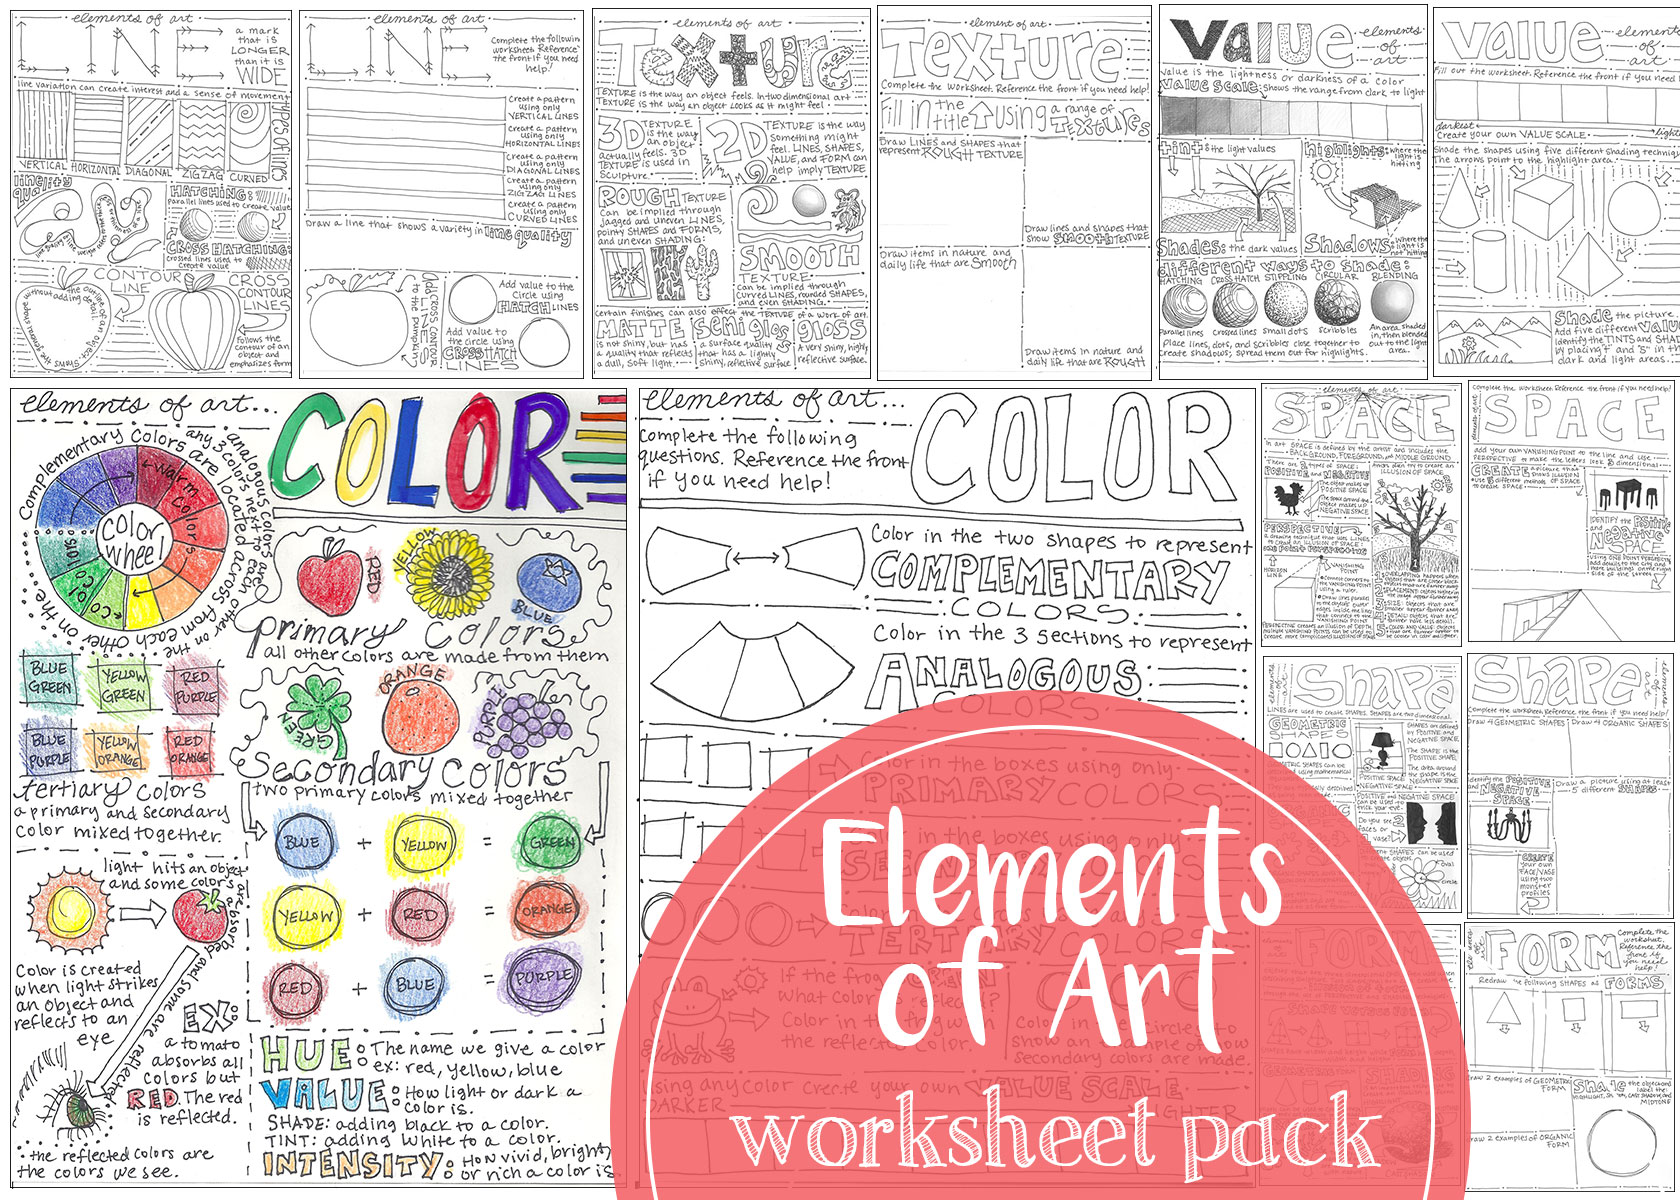 Seven back and front worksheets that cover the elements of art.